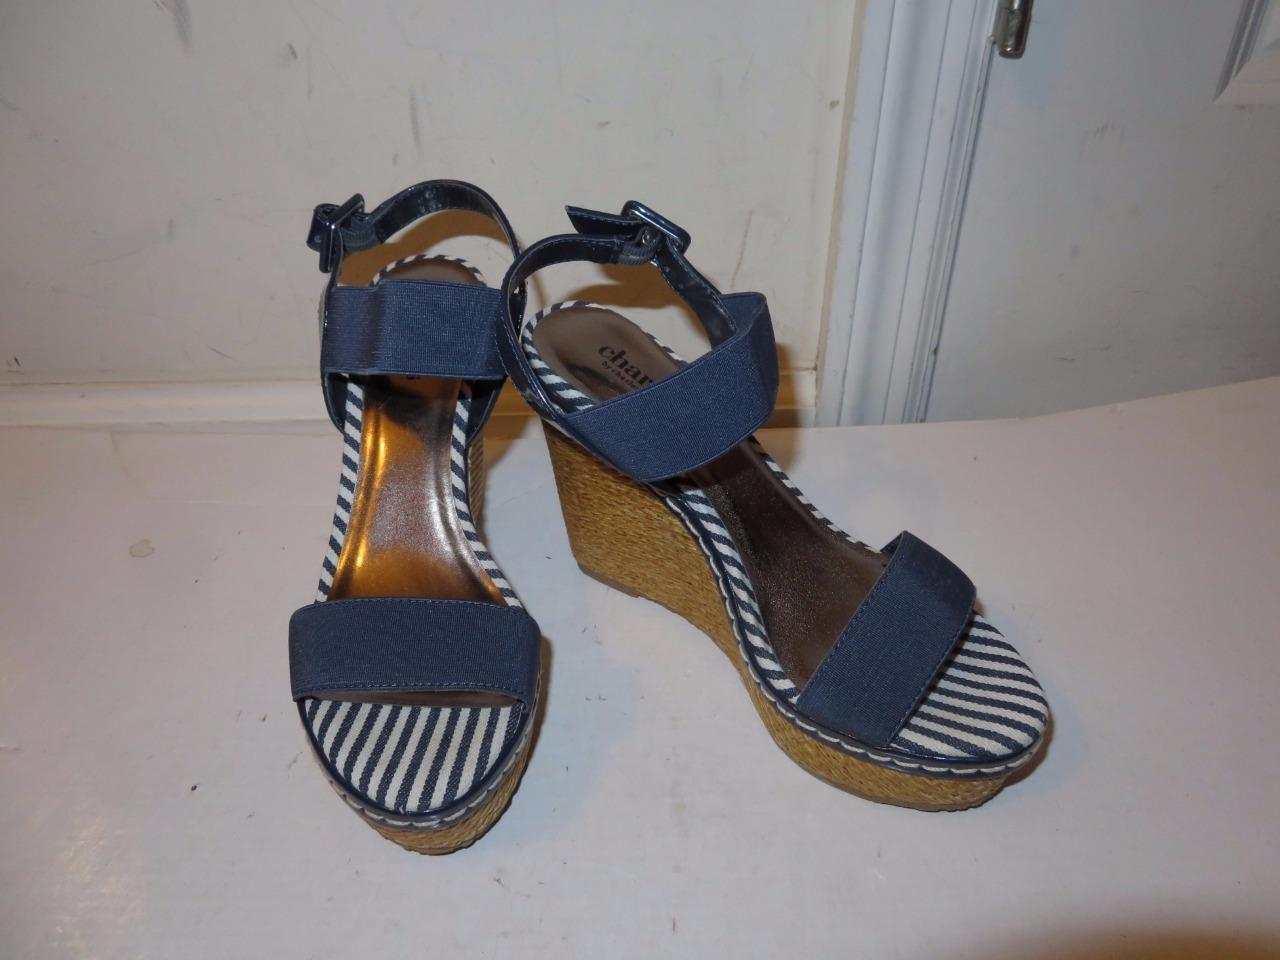 WOMENS CHARLES BY CHARLES DAVID NAVY blueE CANVAS WEDGES W ANKLE BUCKLE SIZE 6M